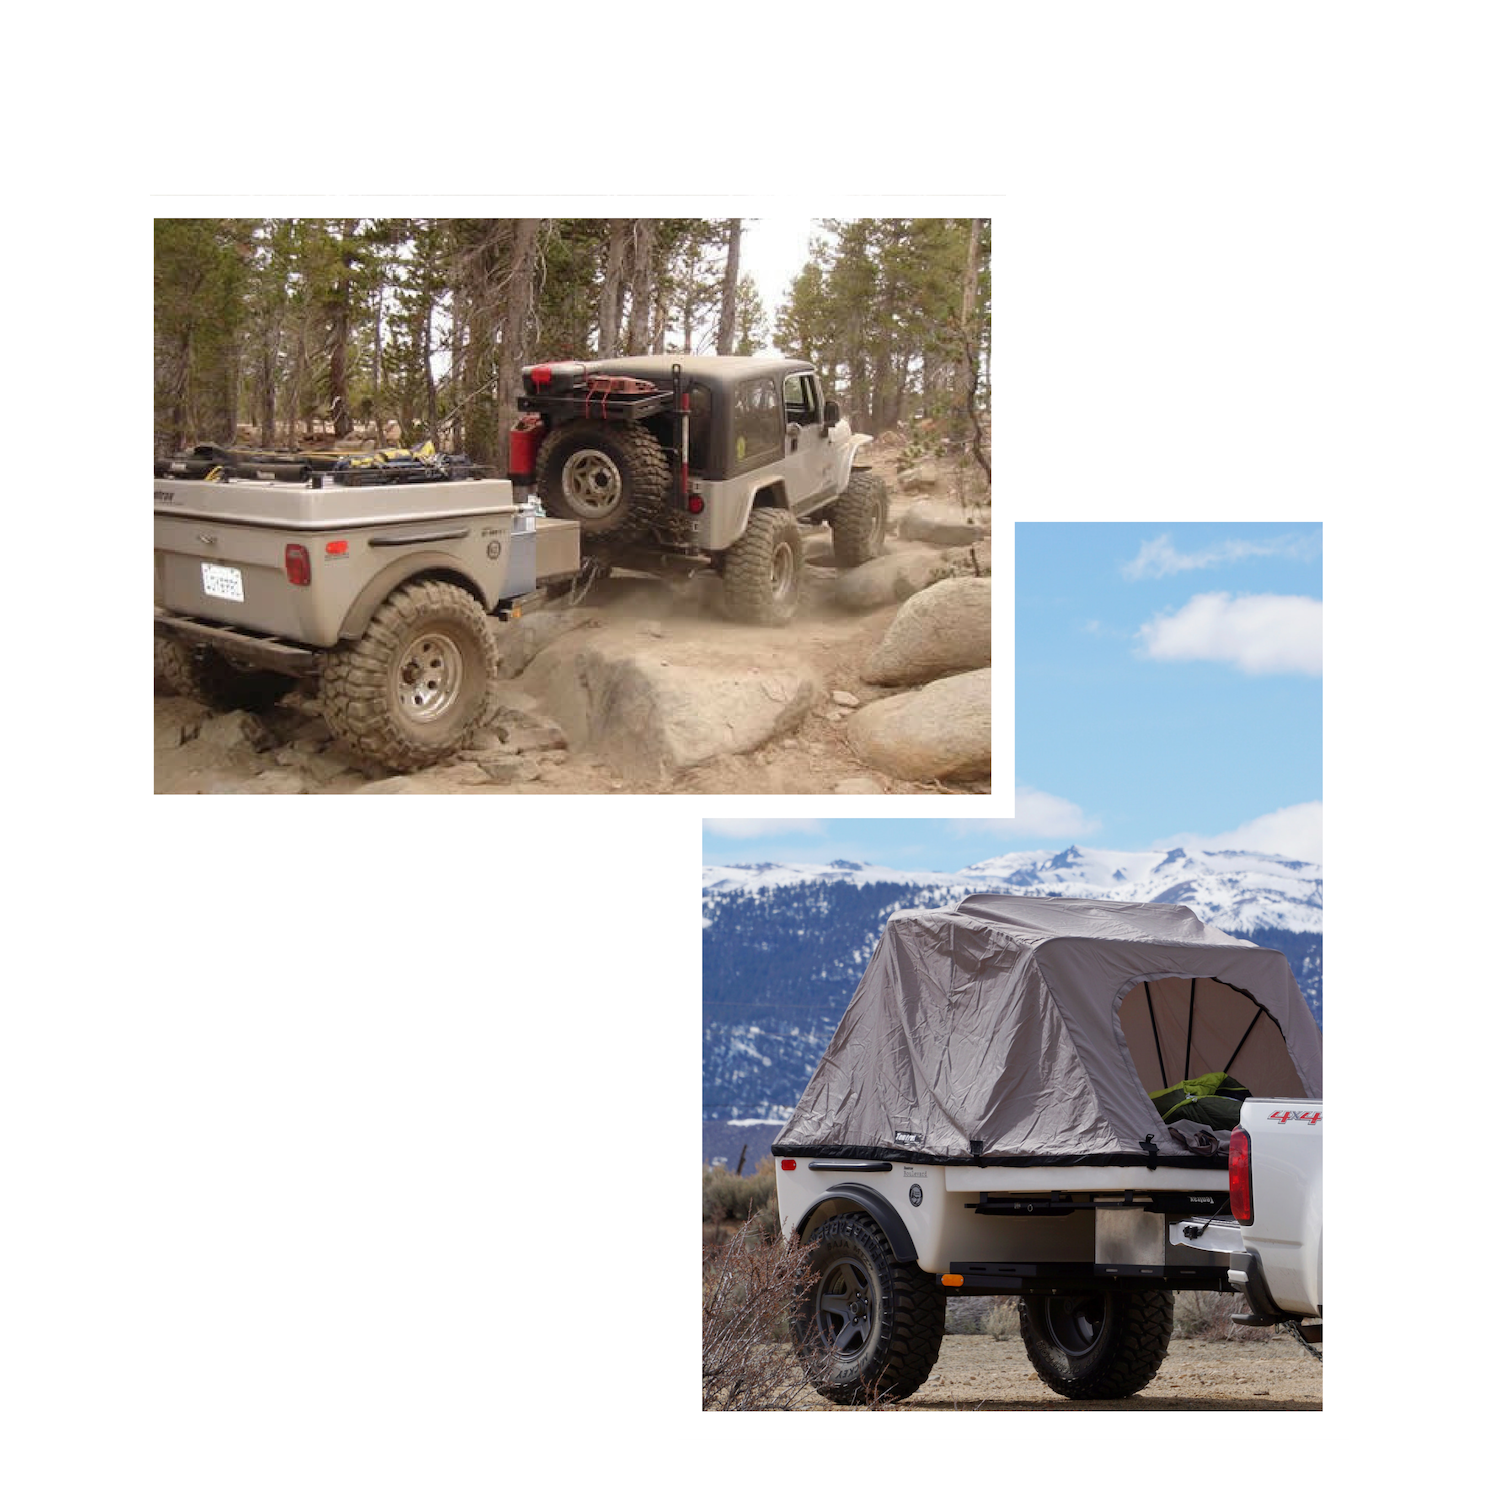 Tentrax Jeep Camper Trailer Hiking Trailer Cargo Trailer Off Road Utility Trailer Overland Adventure Trailer.png